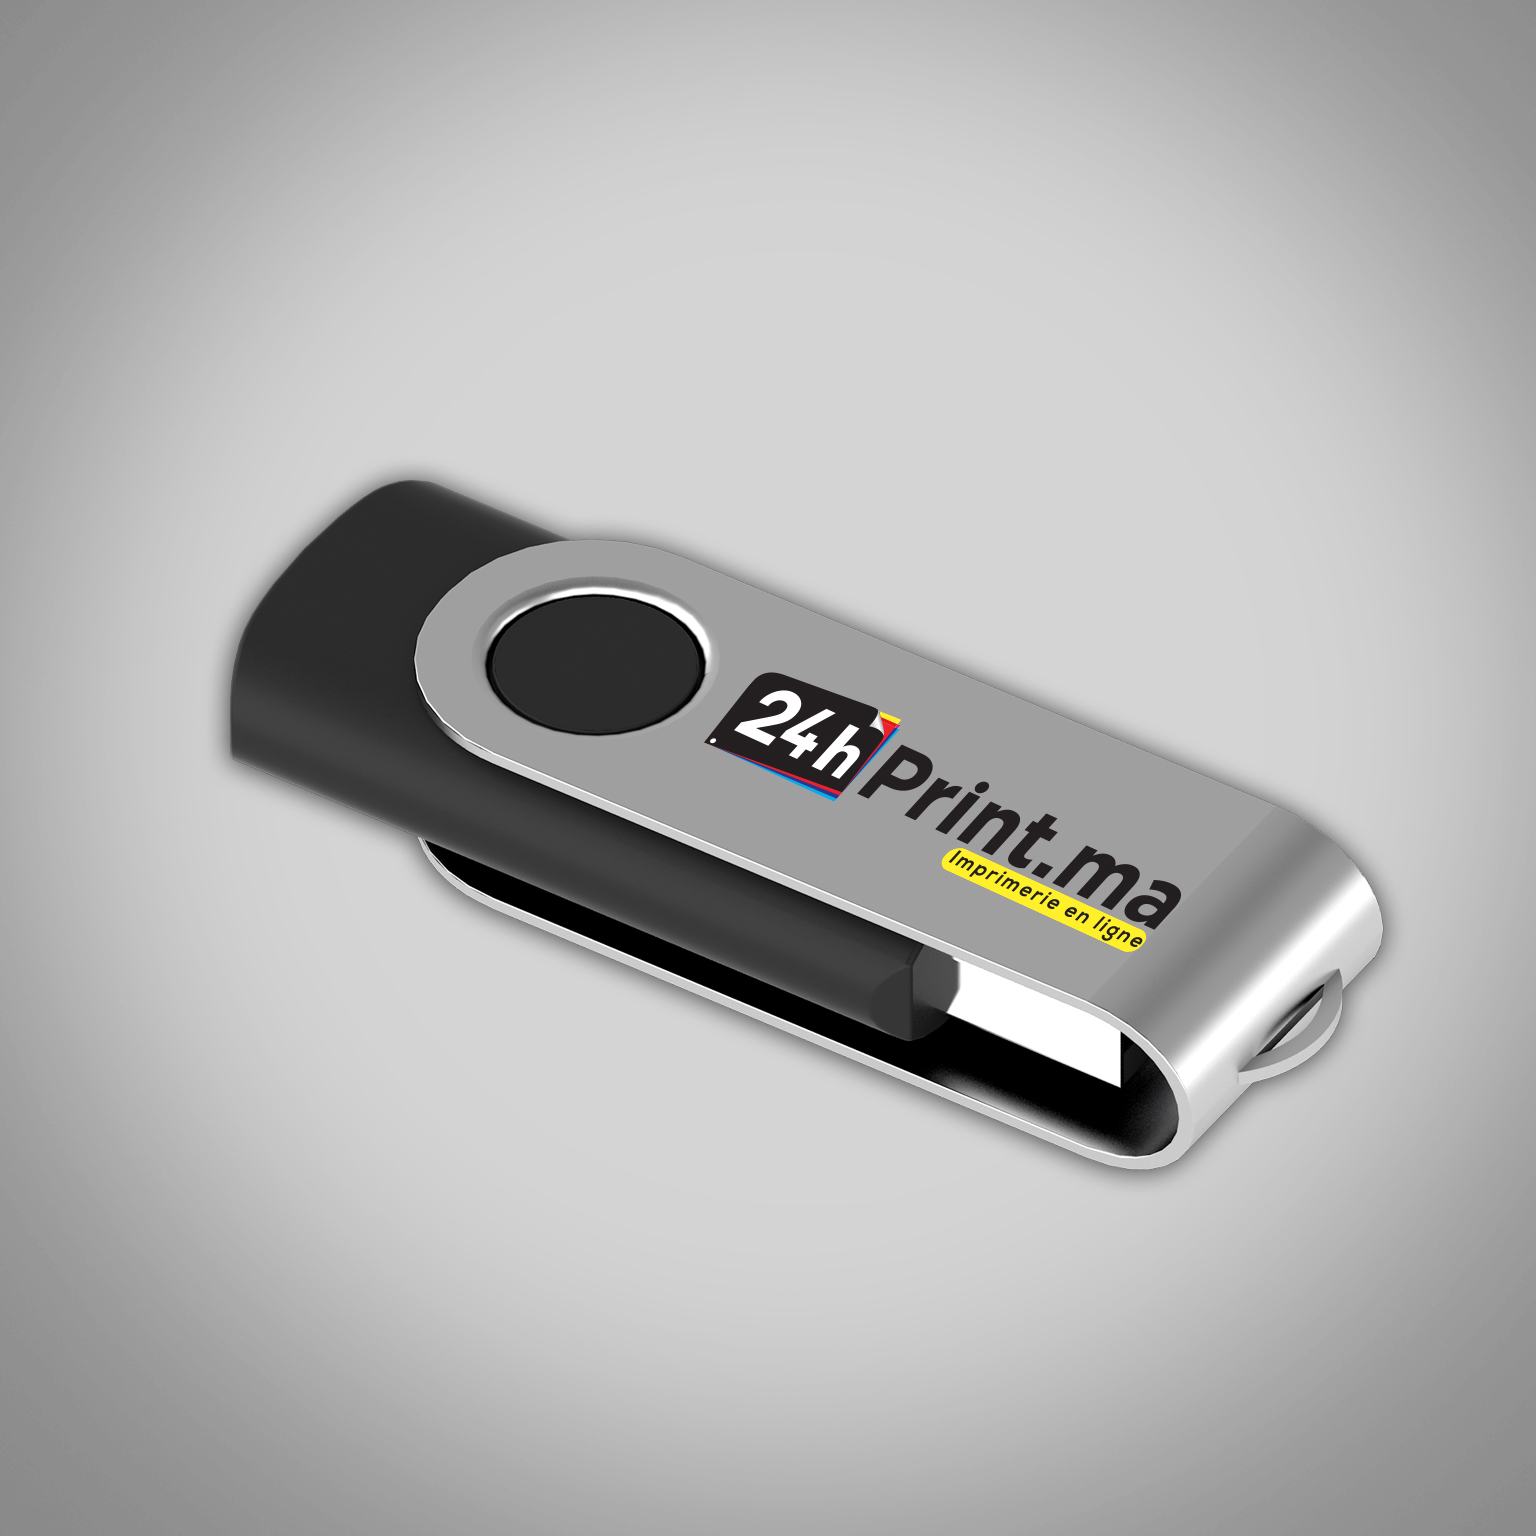 https://www.24hprint.ma/images/products_gallery_images/437_MOCKP_-_CLe_USB_3.jpg